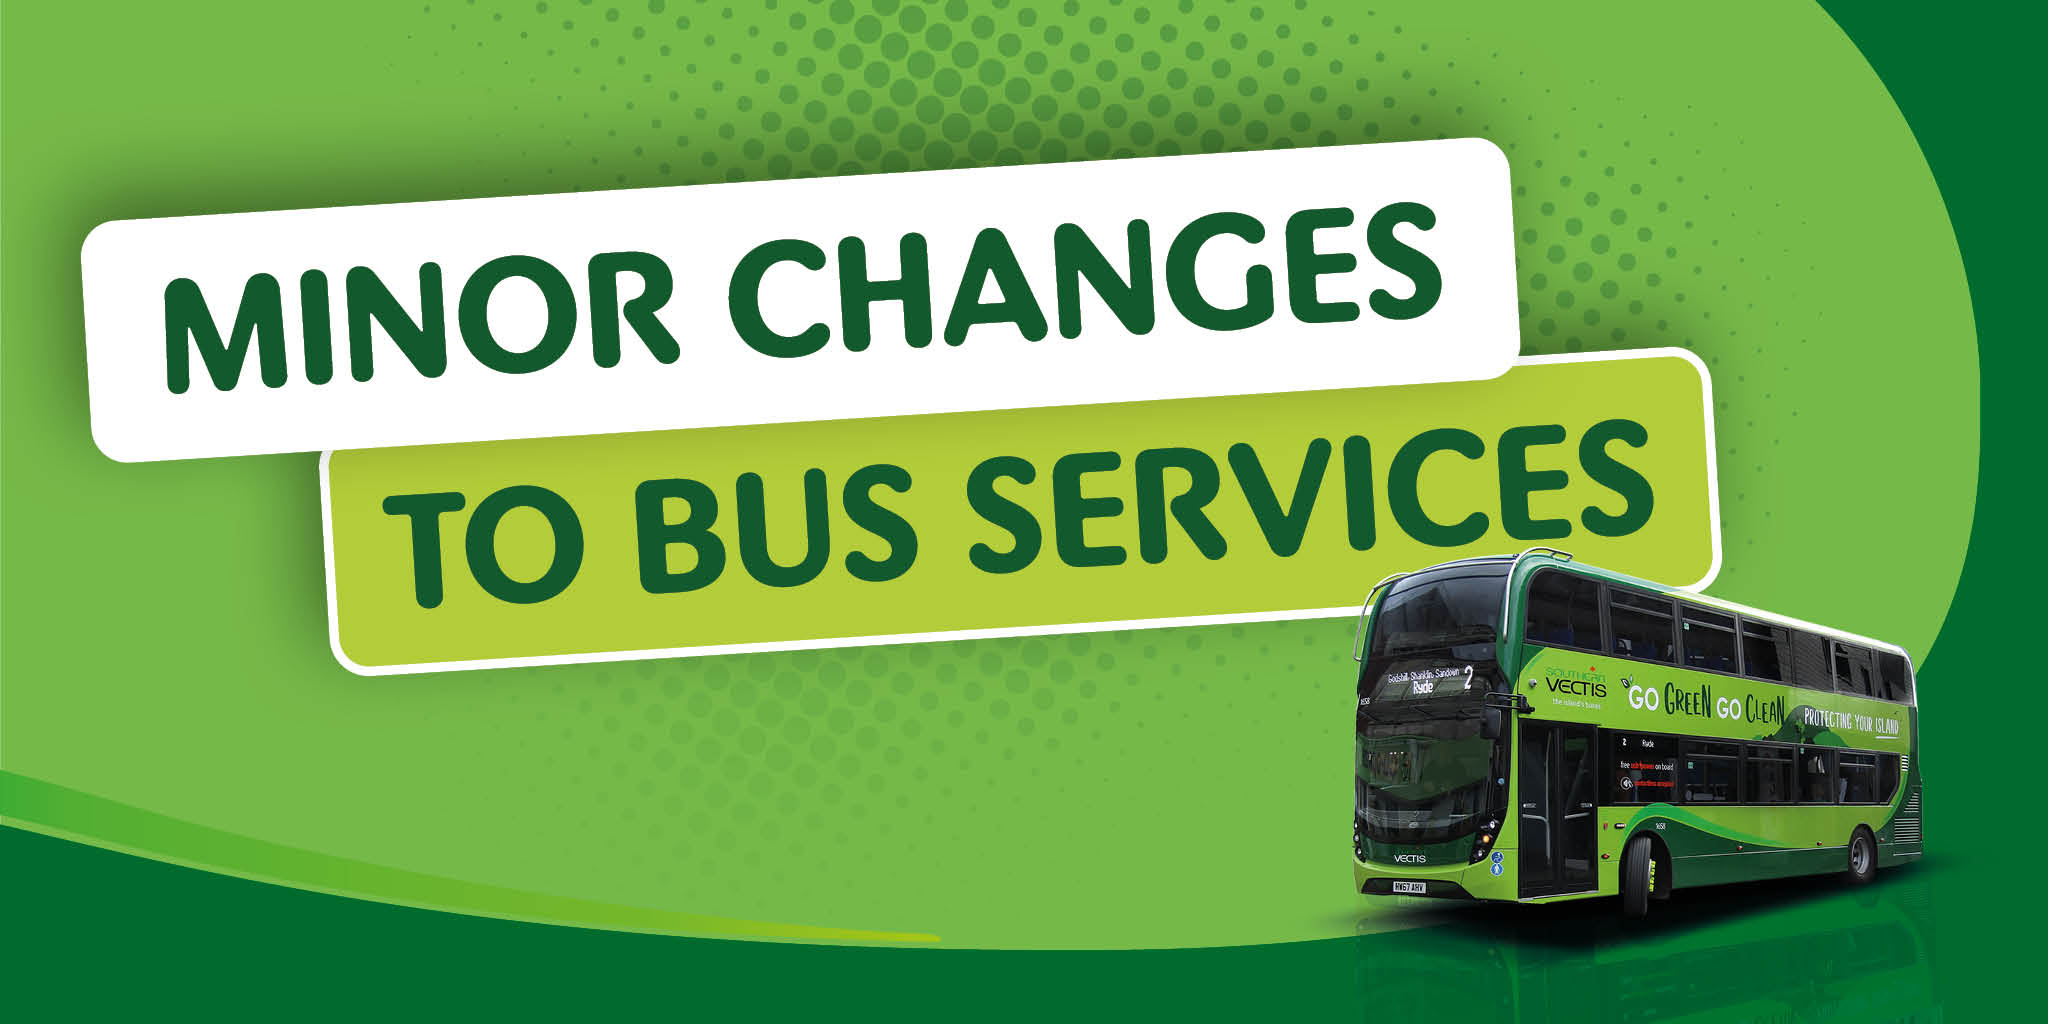 Minor changes to bus services and bus